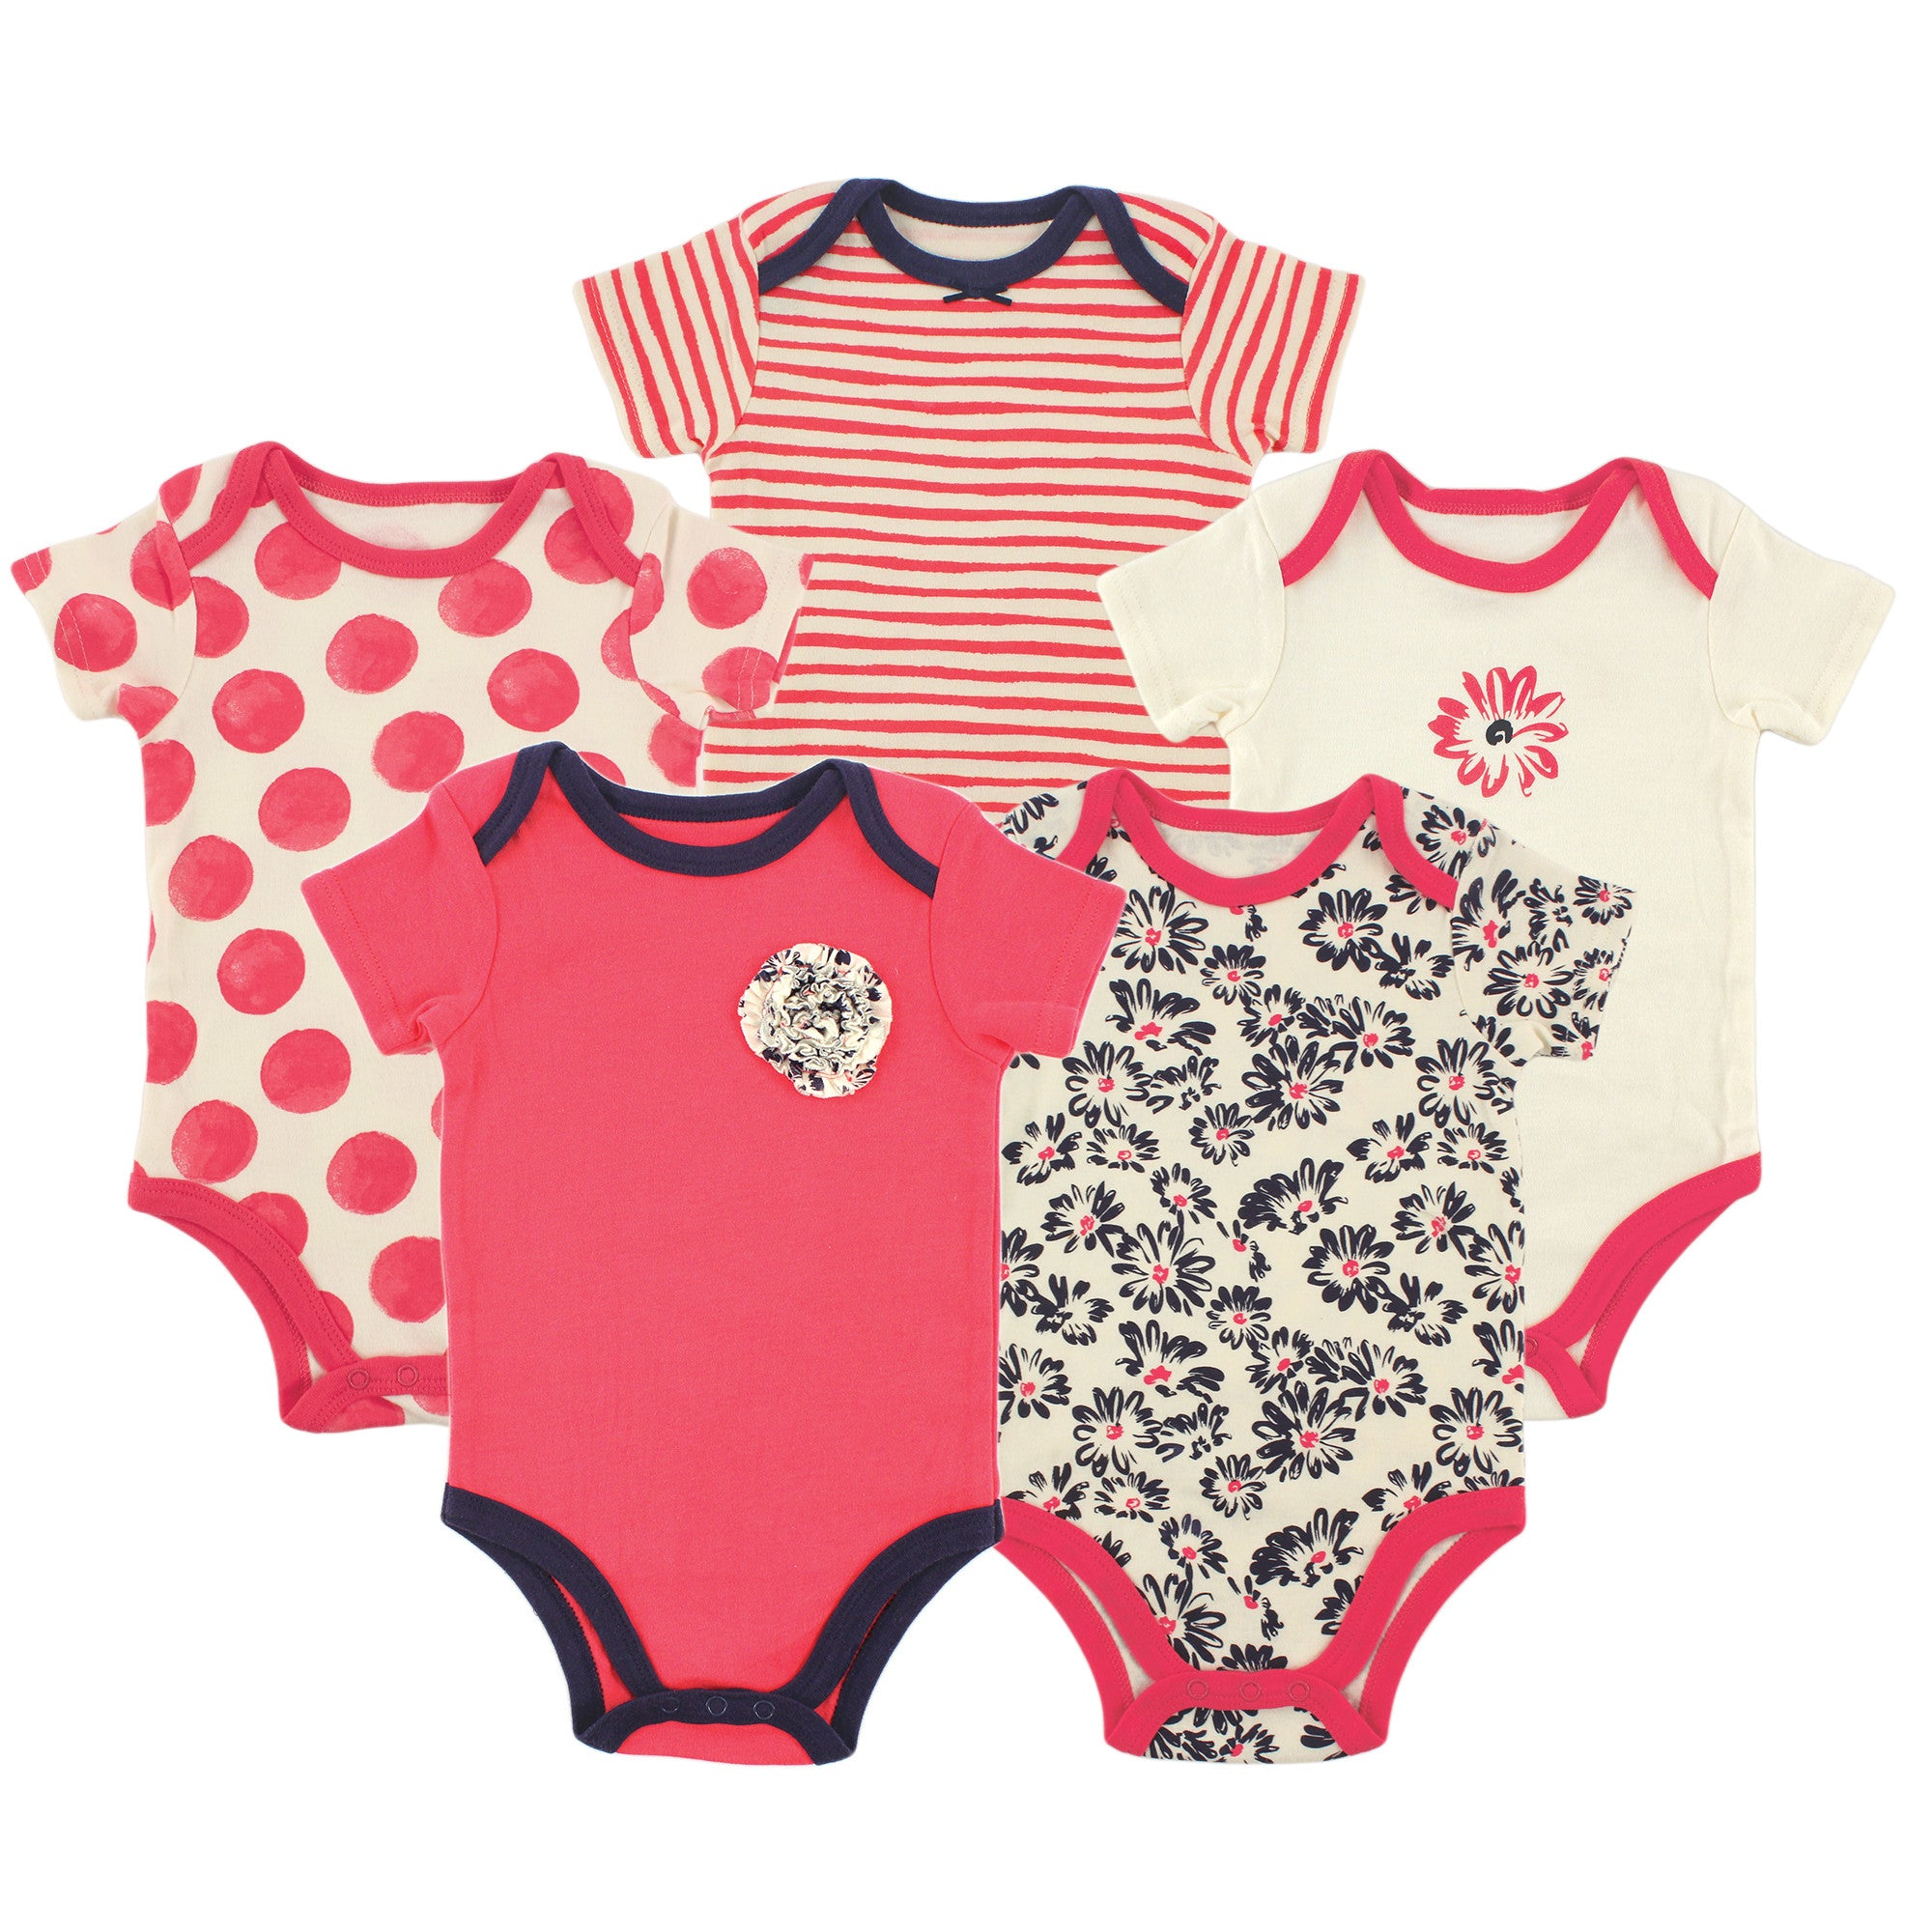 211b907e5 Baby Girl - Half sleeve - 5-Pack Bodysuit